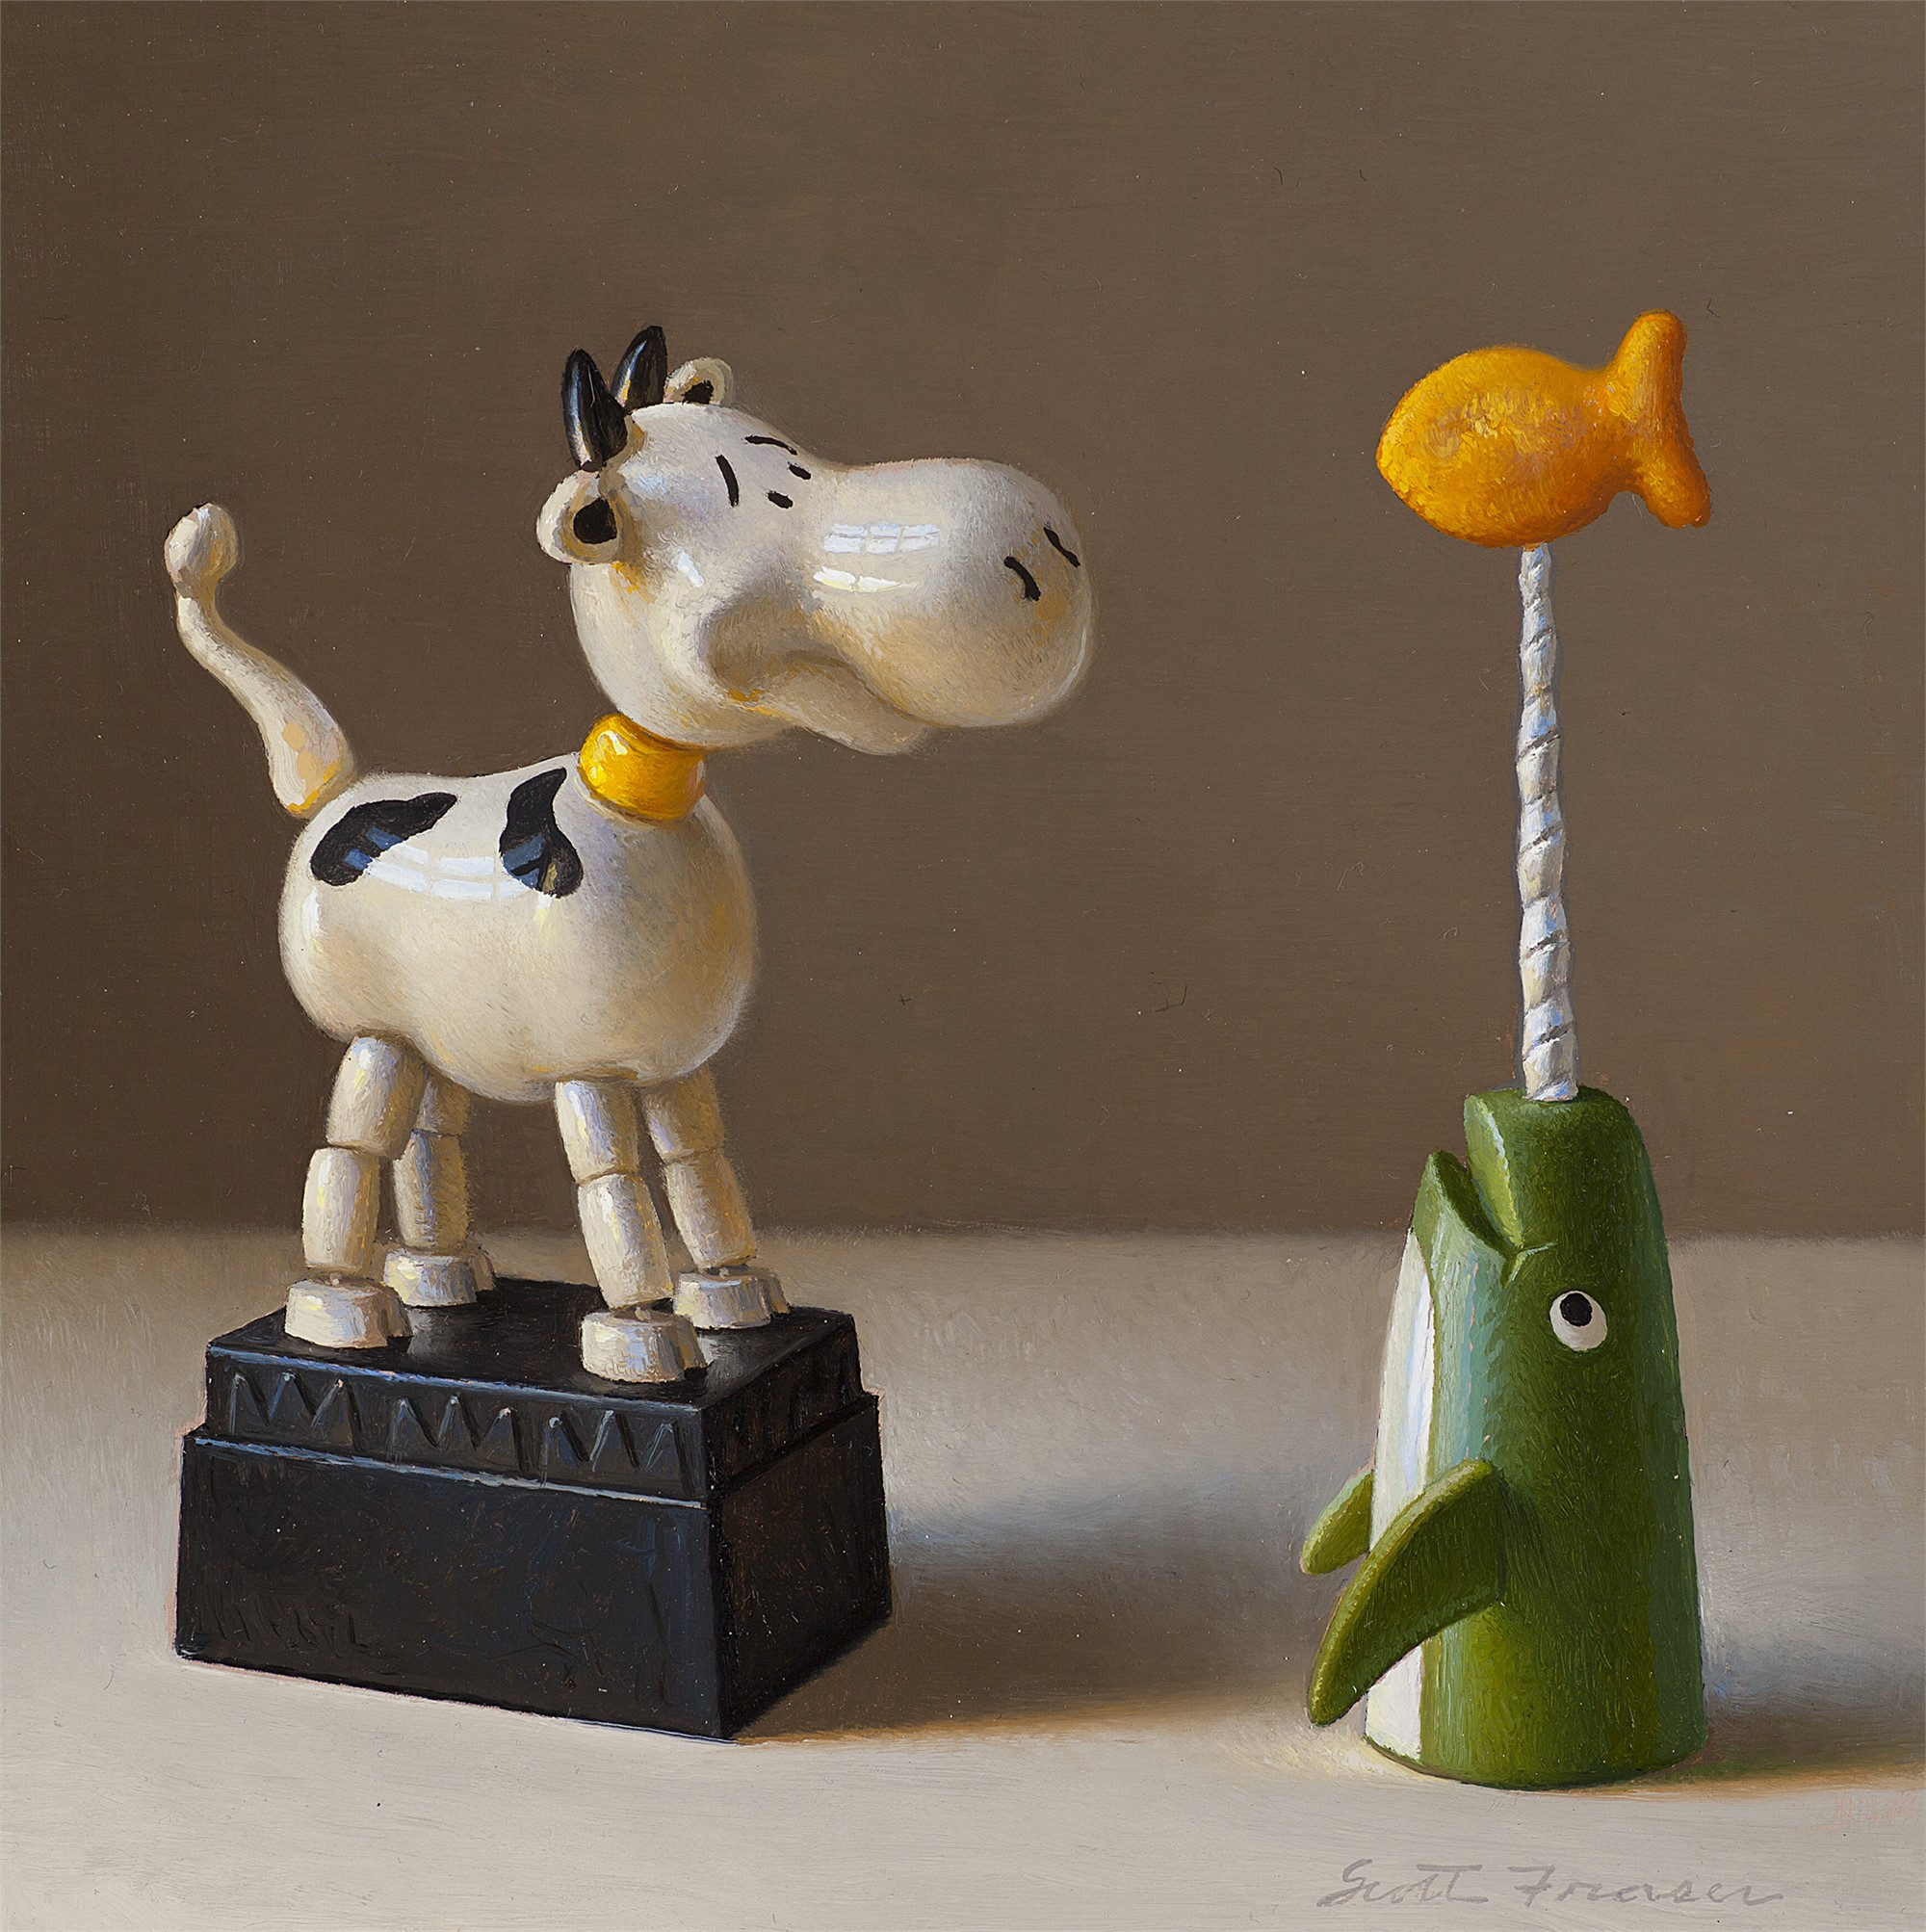 Cow and the Narwhal by Scott Fraser